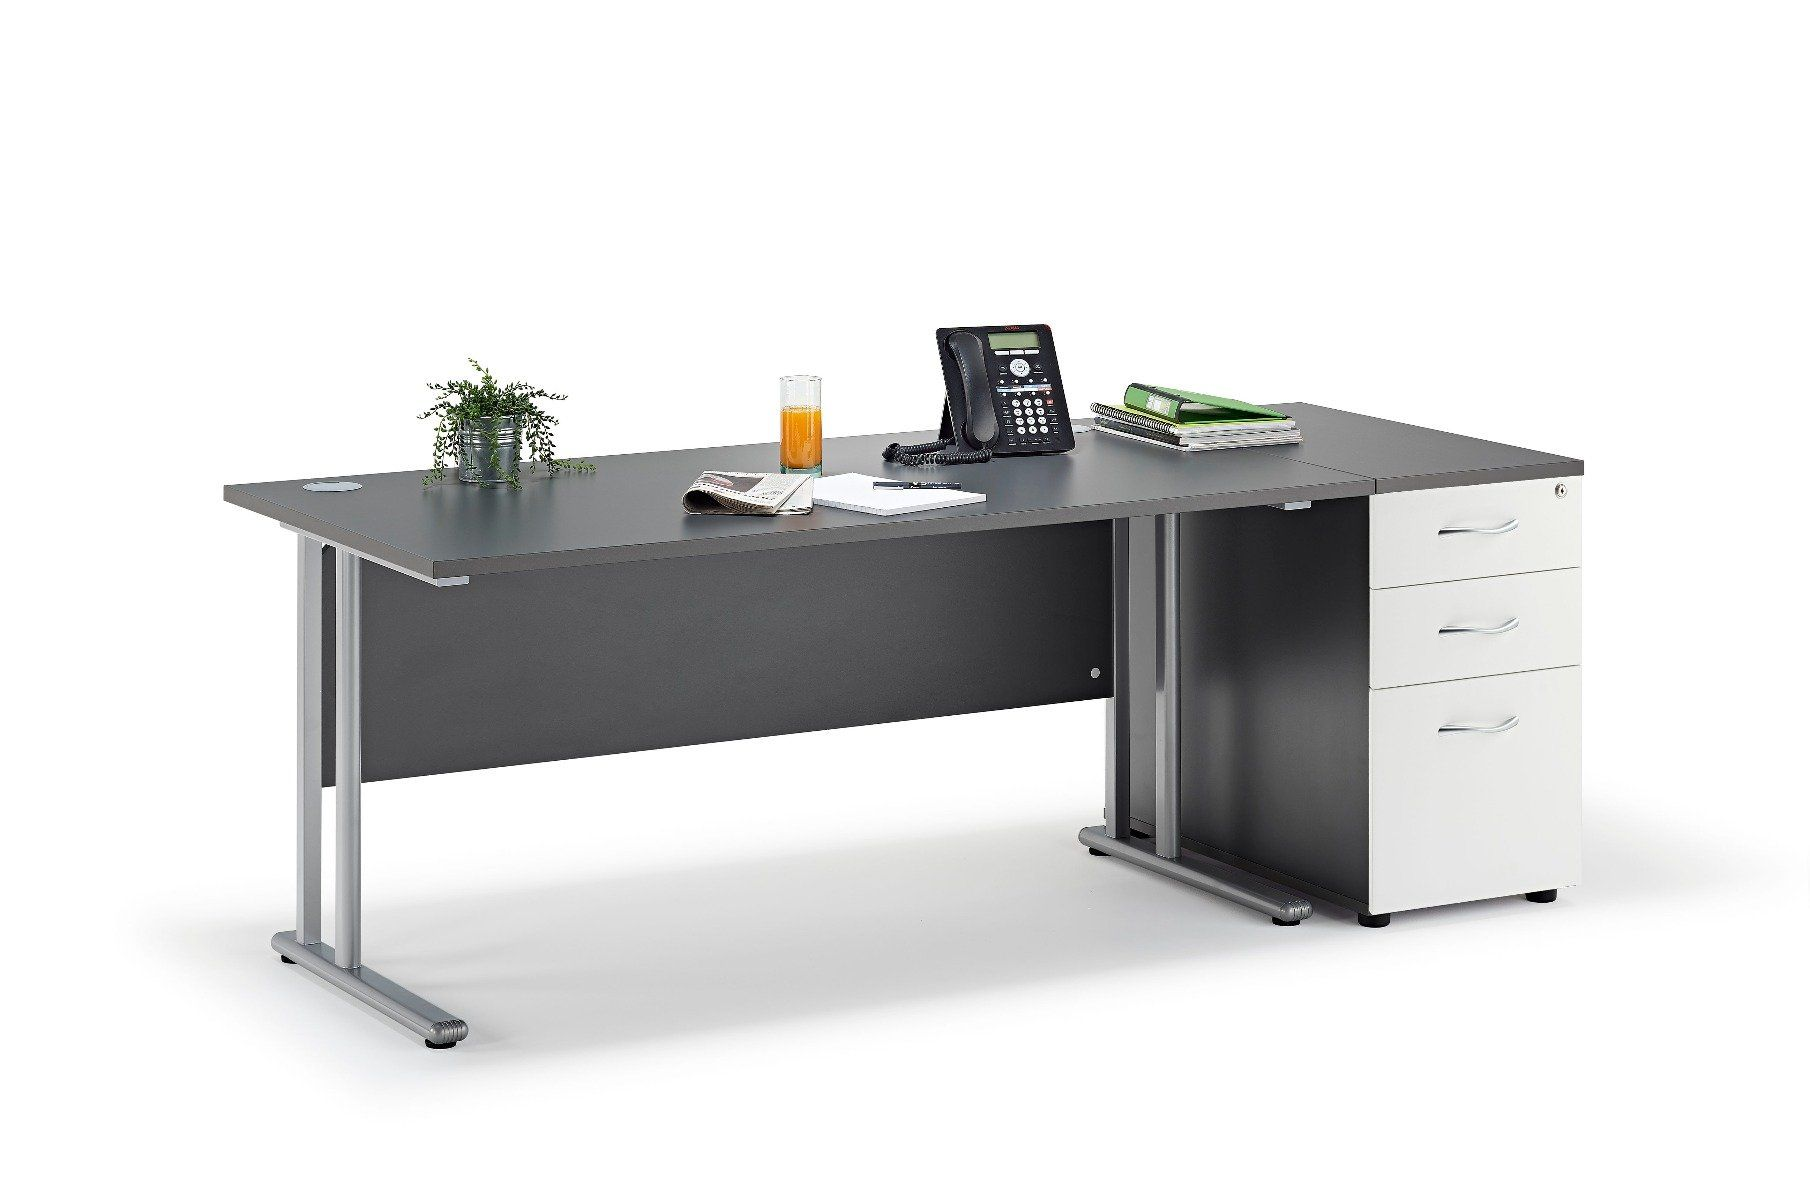 graphite-straight-cantilever-desk-and-800mm-deep-desk-high-pedestal-2